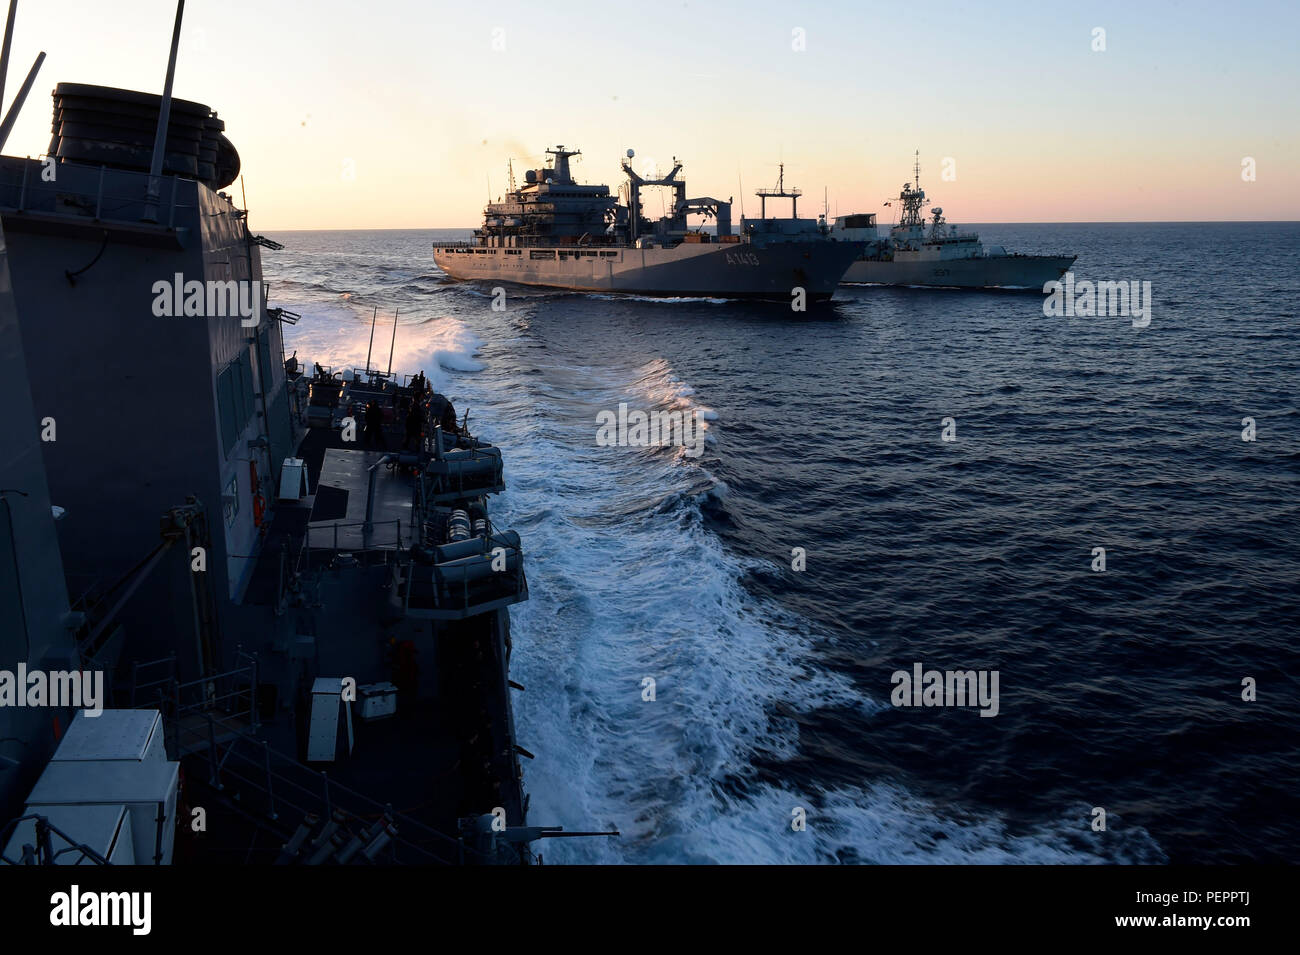 Fgs Security fgs bonn stock photos & fgs bonn stock images - alamy